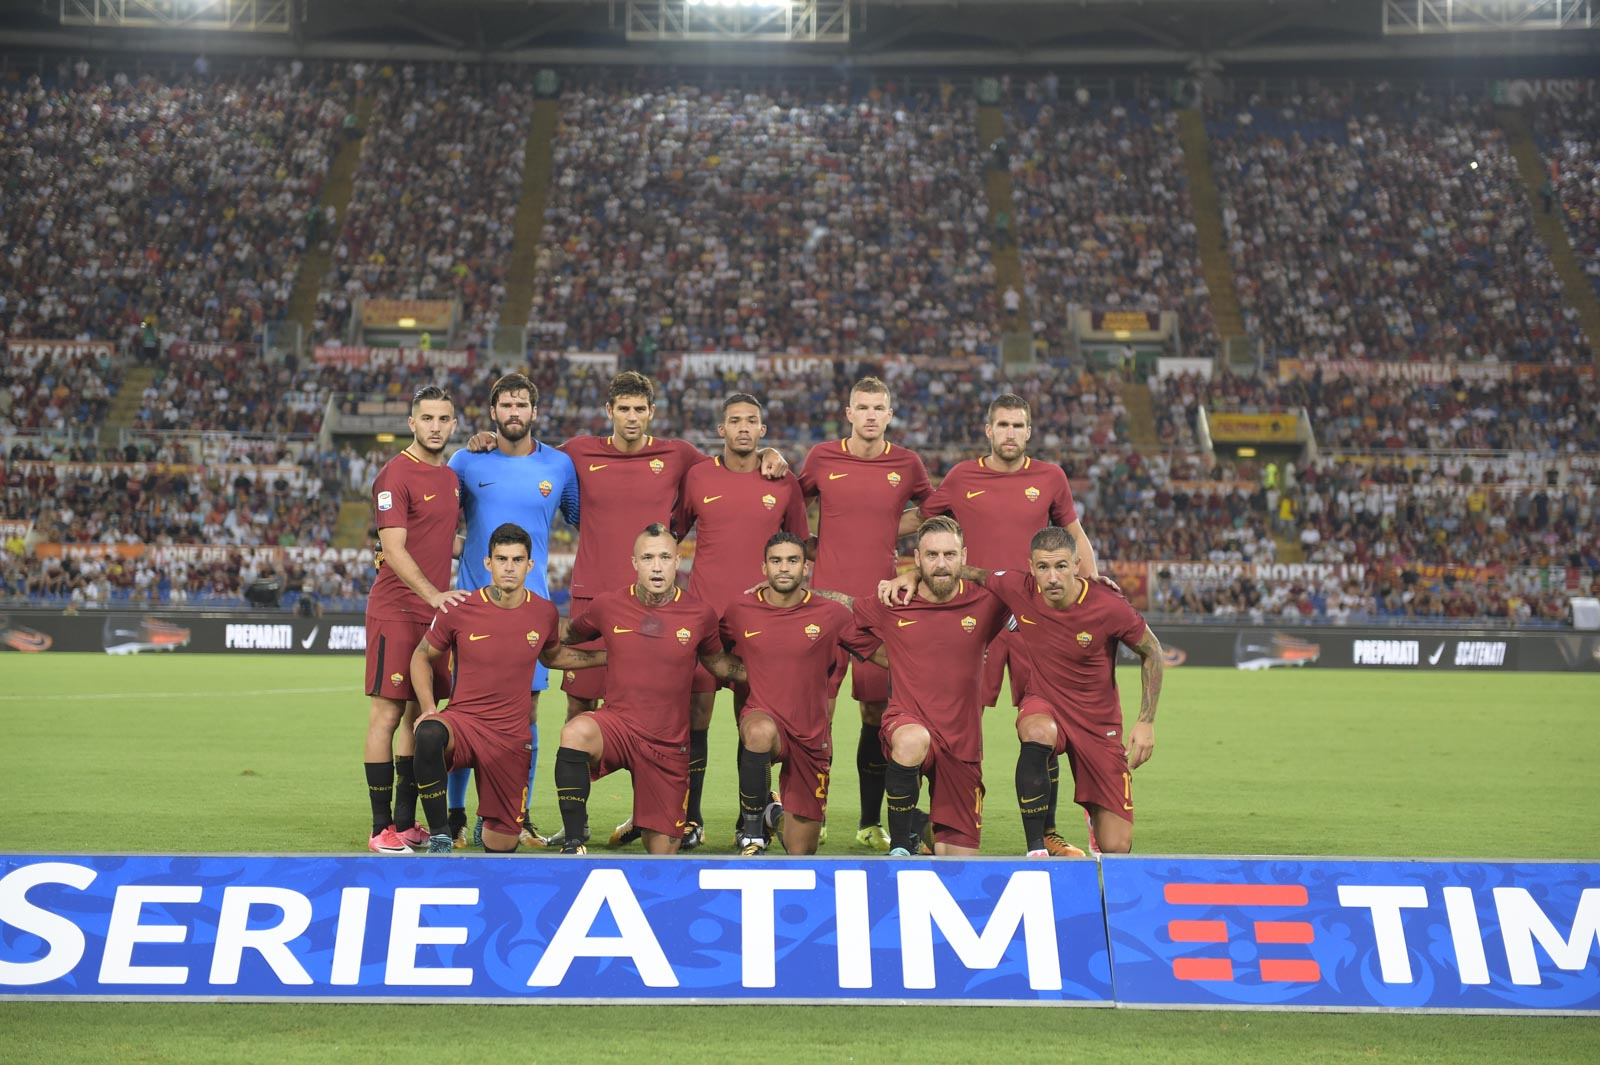 http://res.cloudinary.com/as-roma-turbine-production/image/upload/v1/asroma-uat/mvcmc6eoiulcj8er1ivr